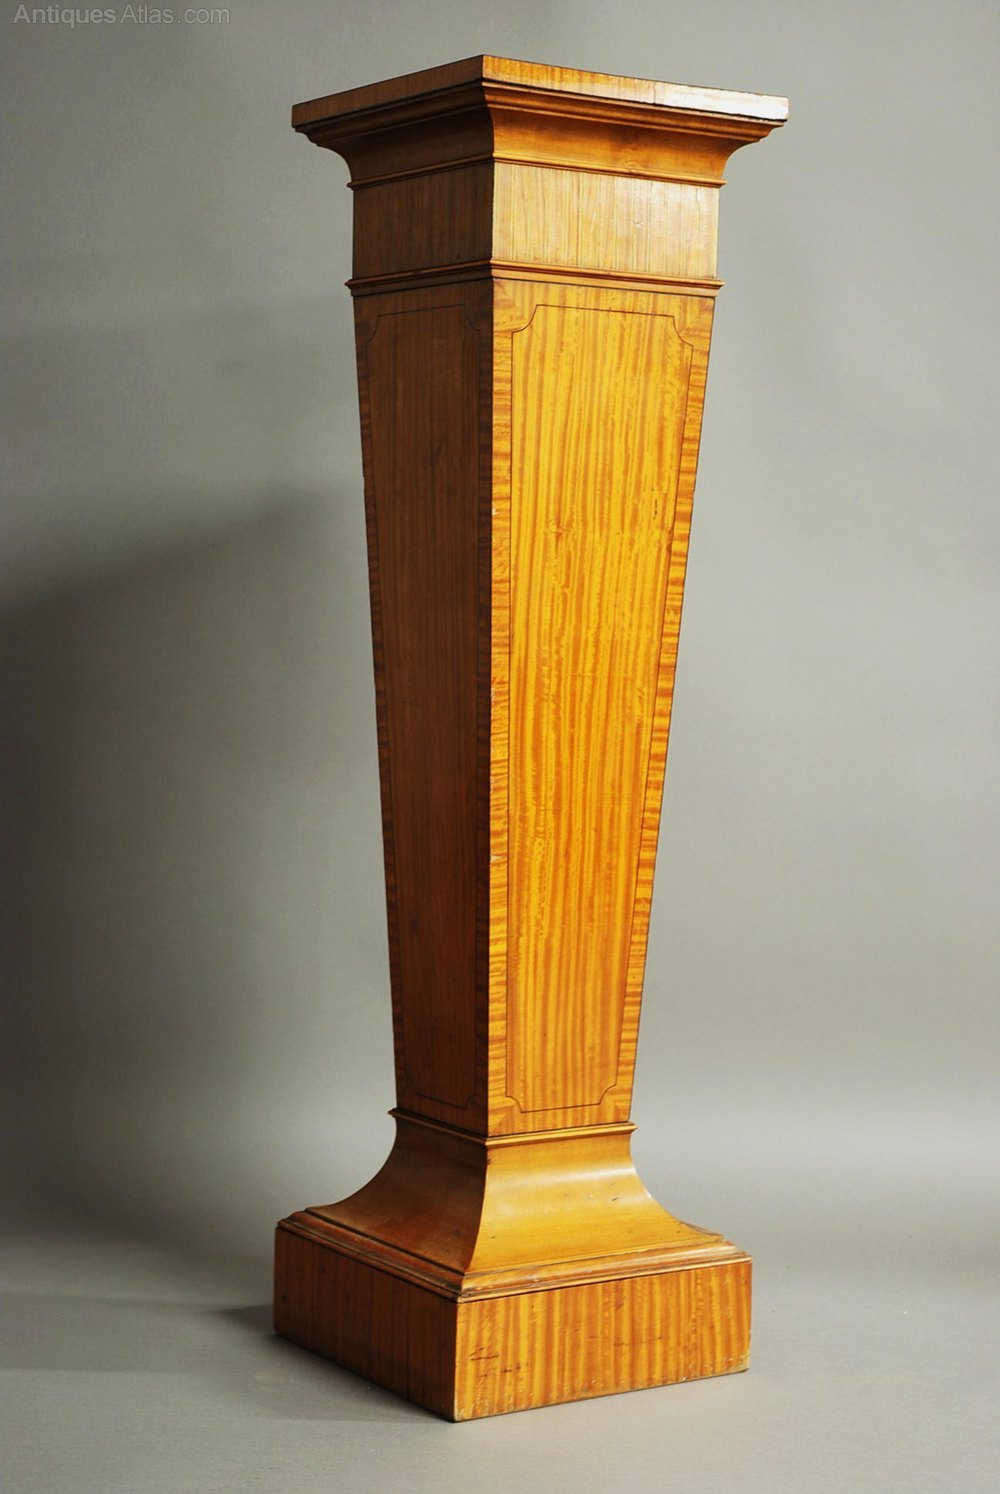 Best Decorative Satinwood Pedestal Of Tapered Form Antiques Atlas This Month